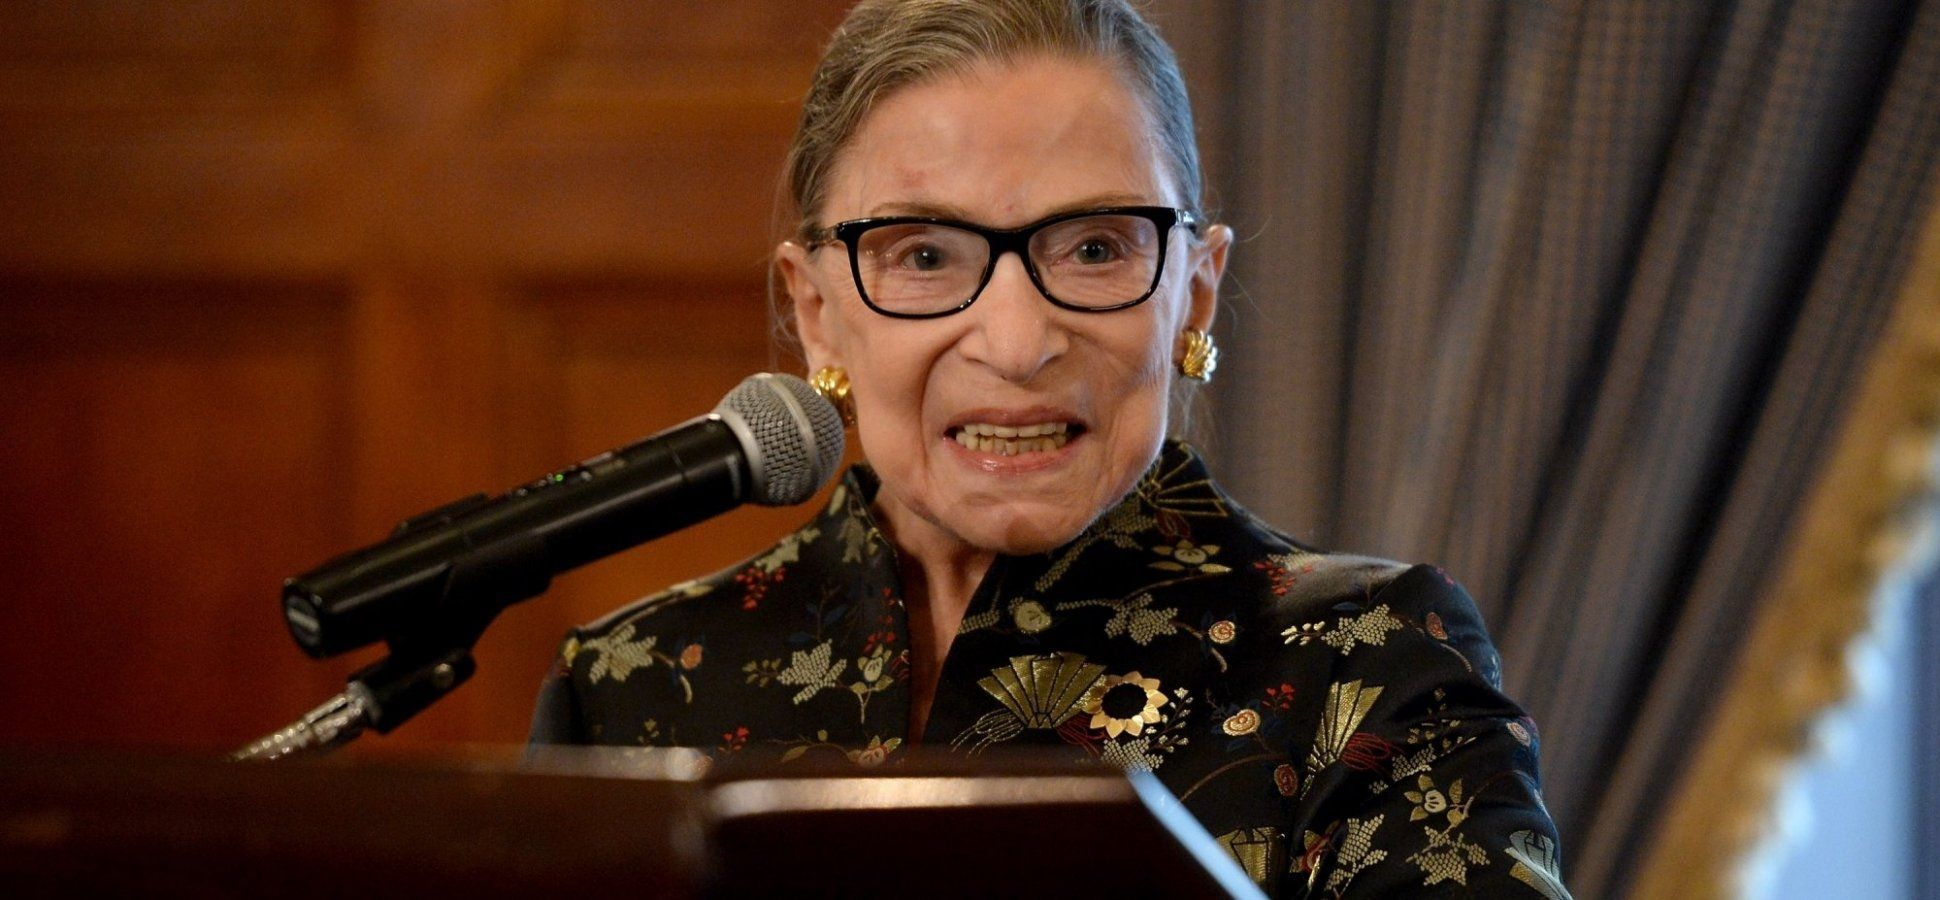 Want To Raise A Trail Blazing Daughter Do These 7 Things Justice Ruth Bader Ginsburg Ruth Bader Ginsburg Supreme Court Justices